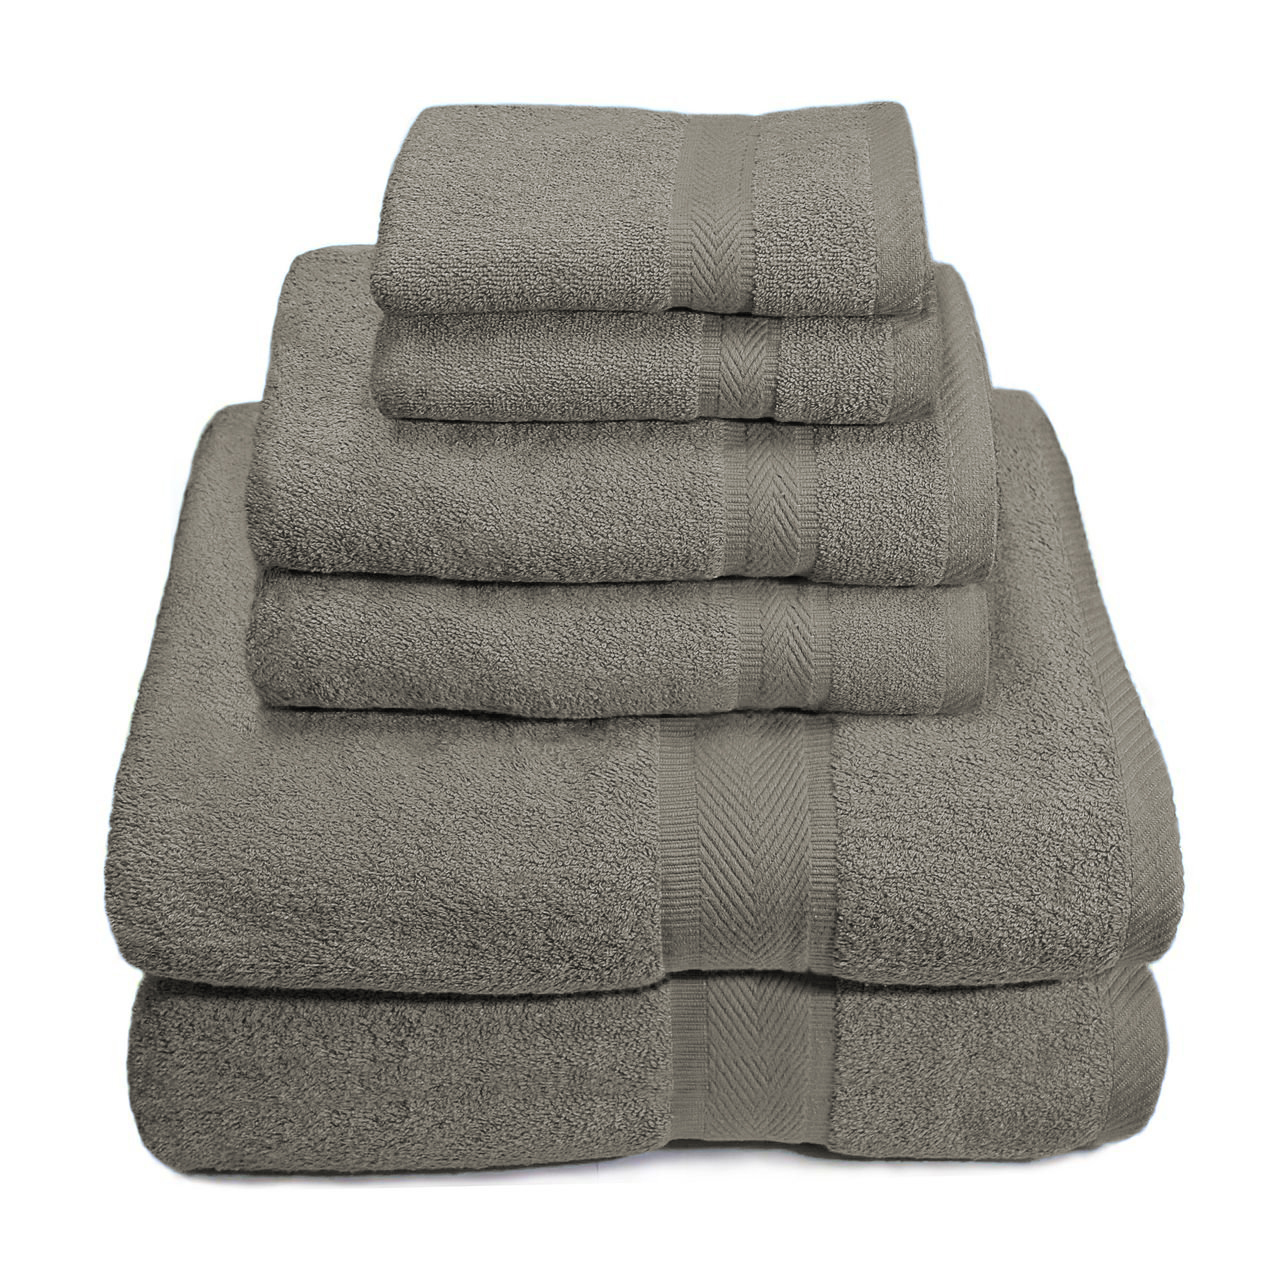 6 Piece Premium Egyptian Cotton Towel Set, Bath Towels, Hand Towels, Wash Cloths - Gray